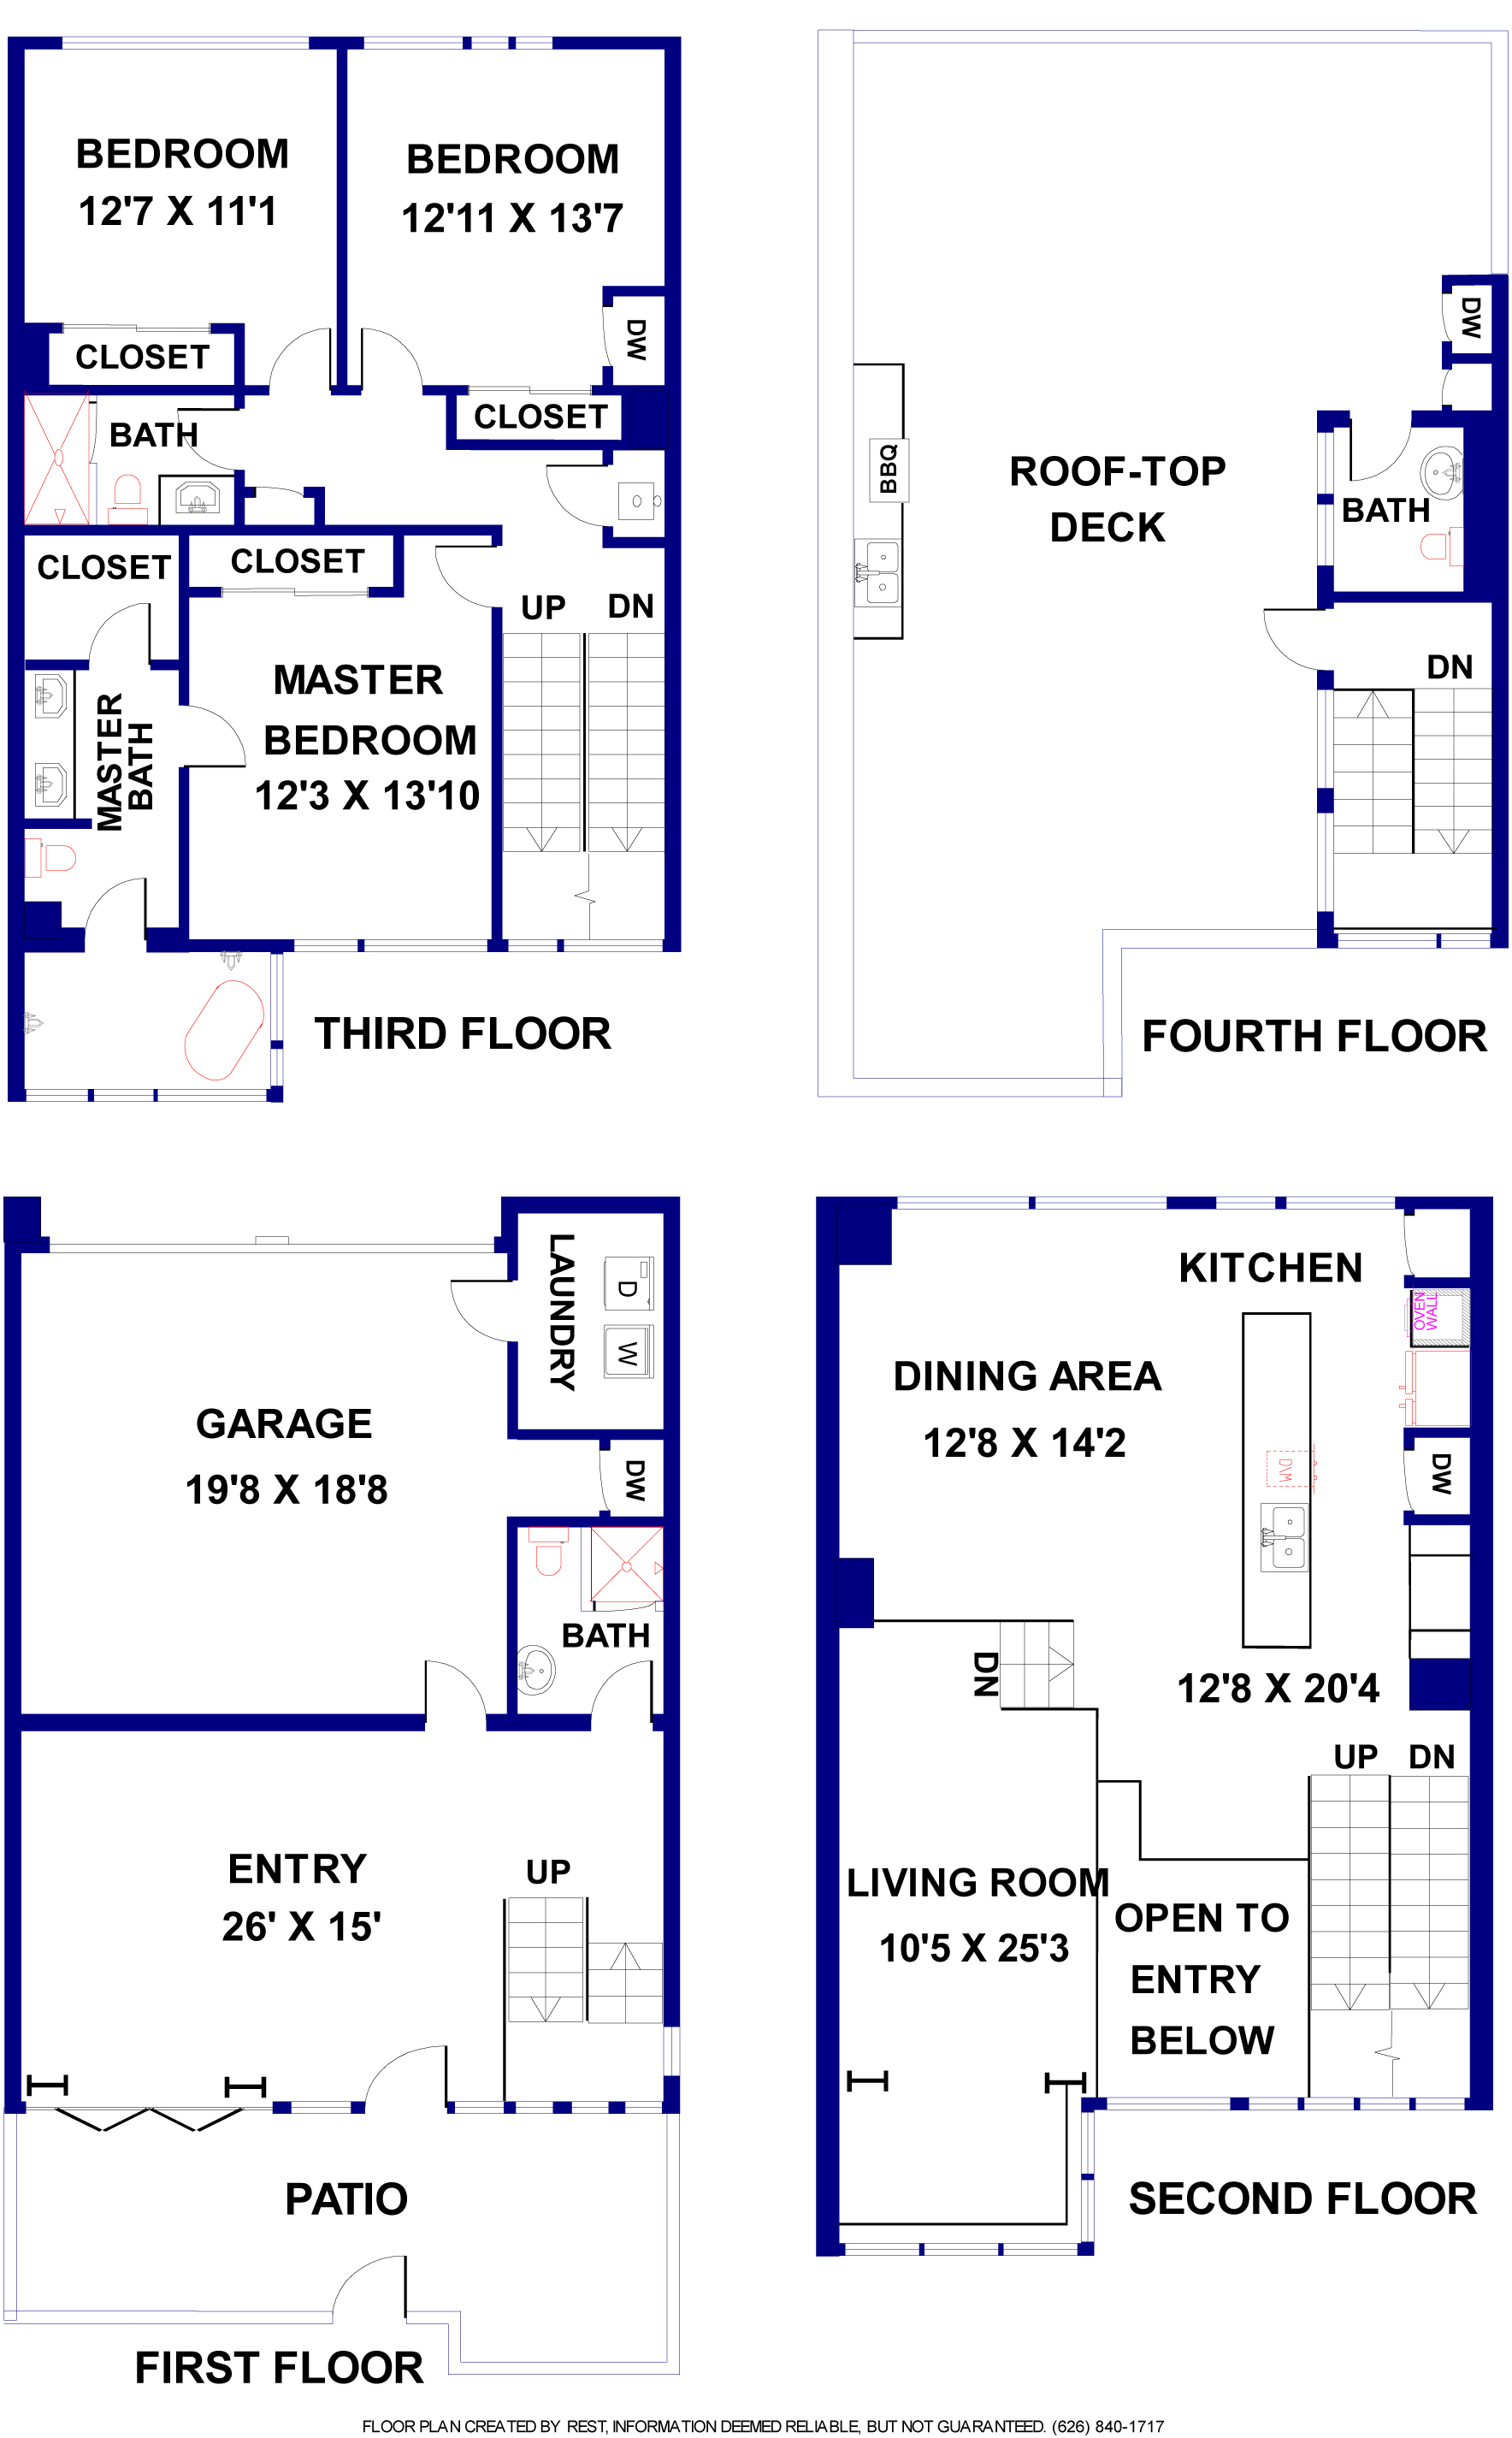 Sample floor plan. Layout of available units may vary.  Measurements should be field verified.